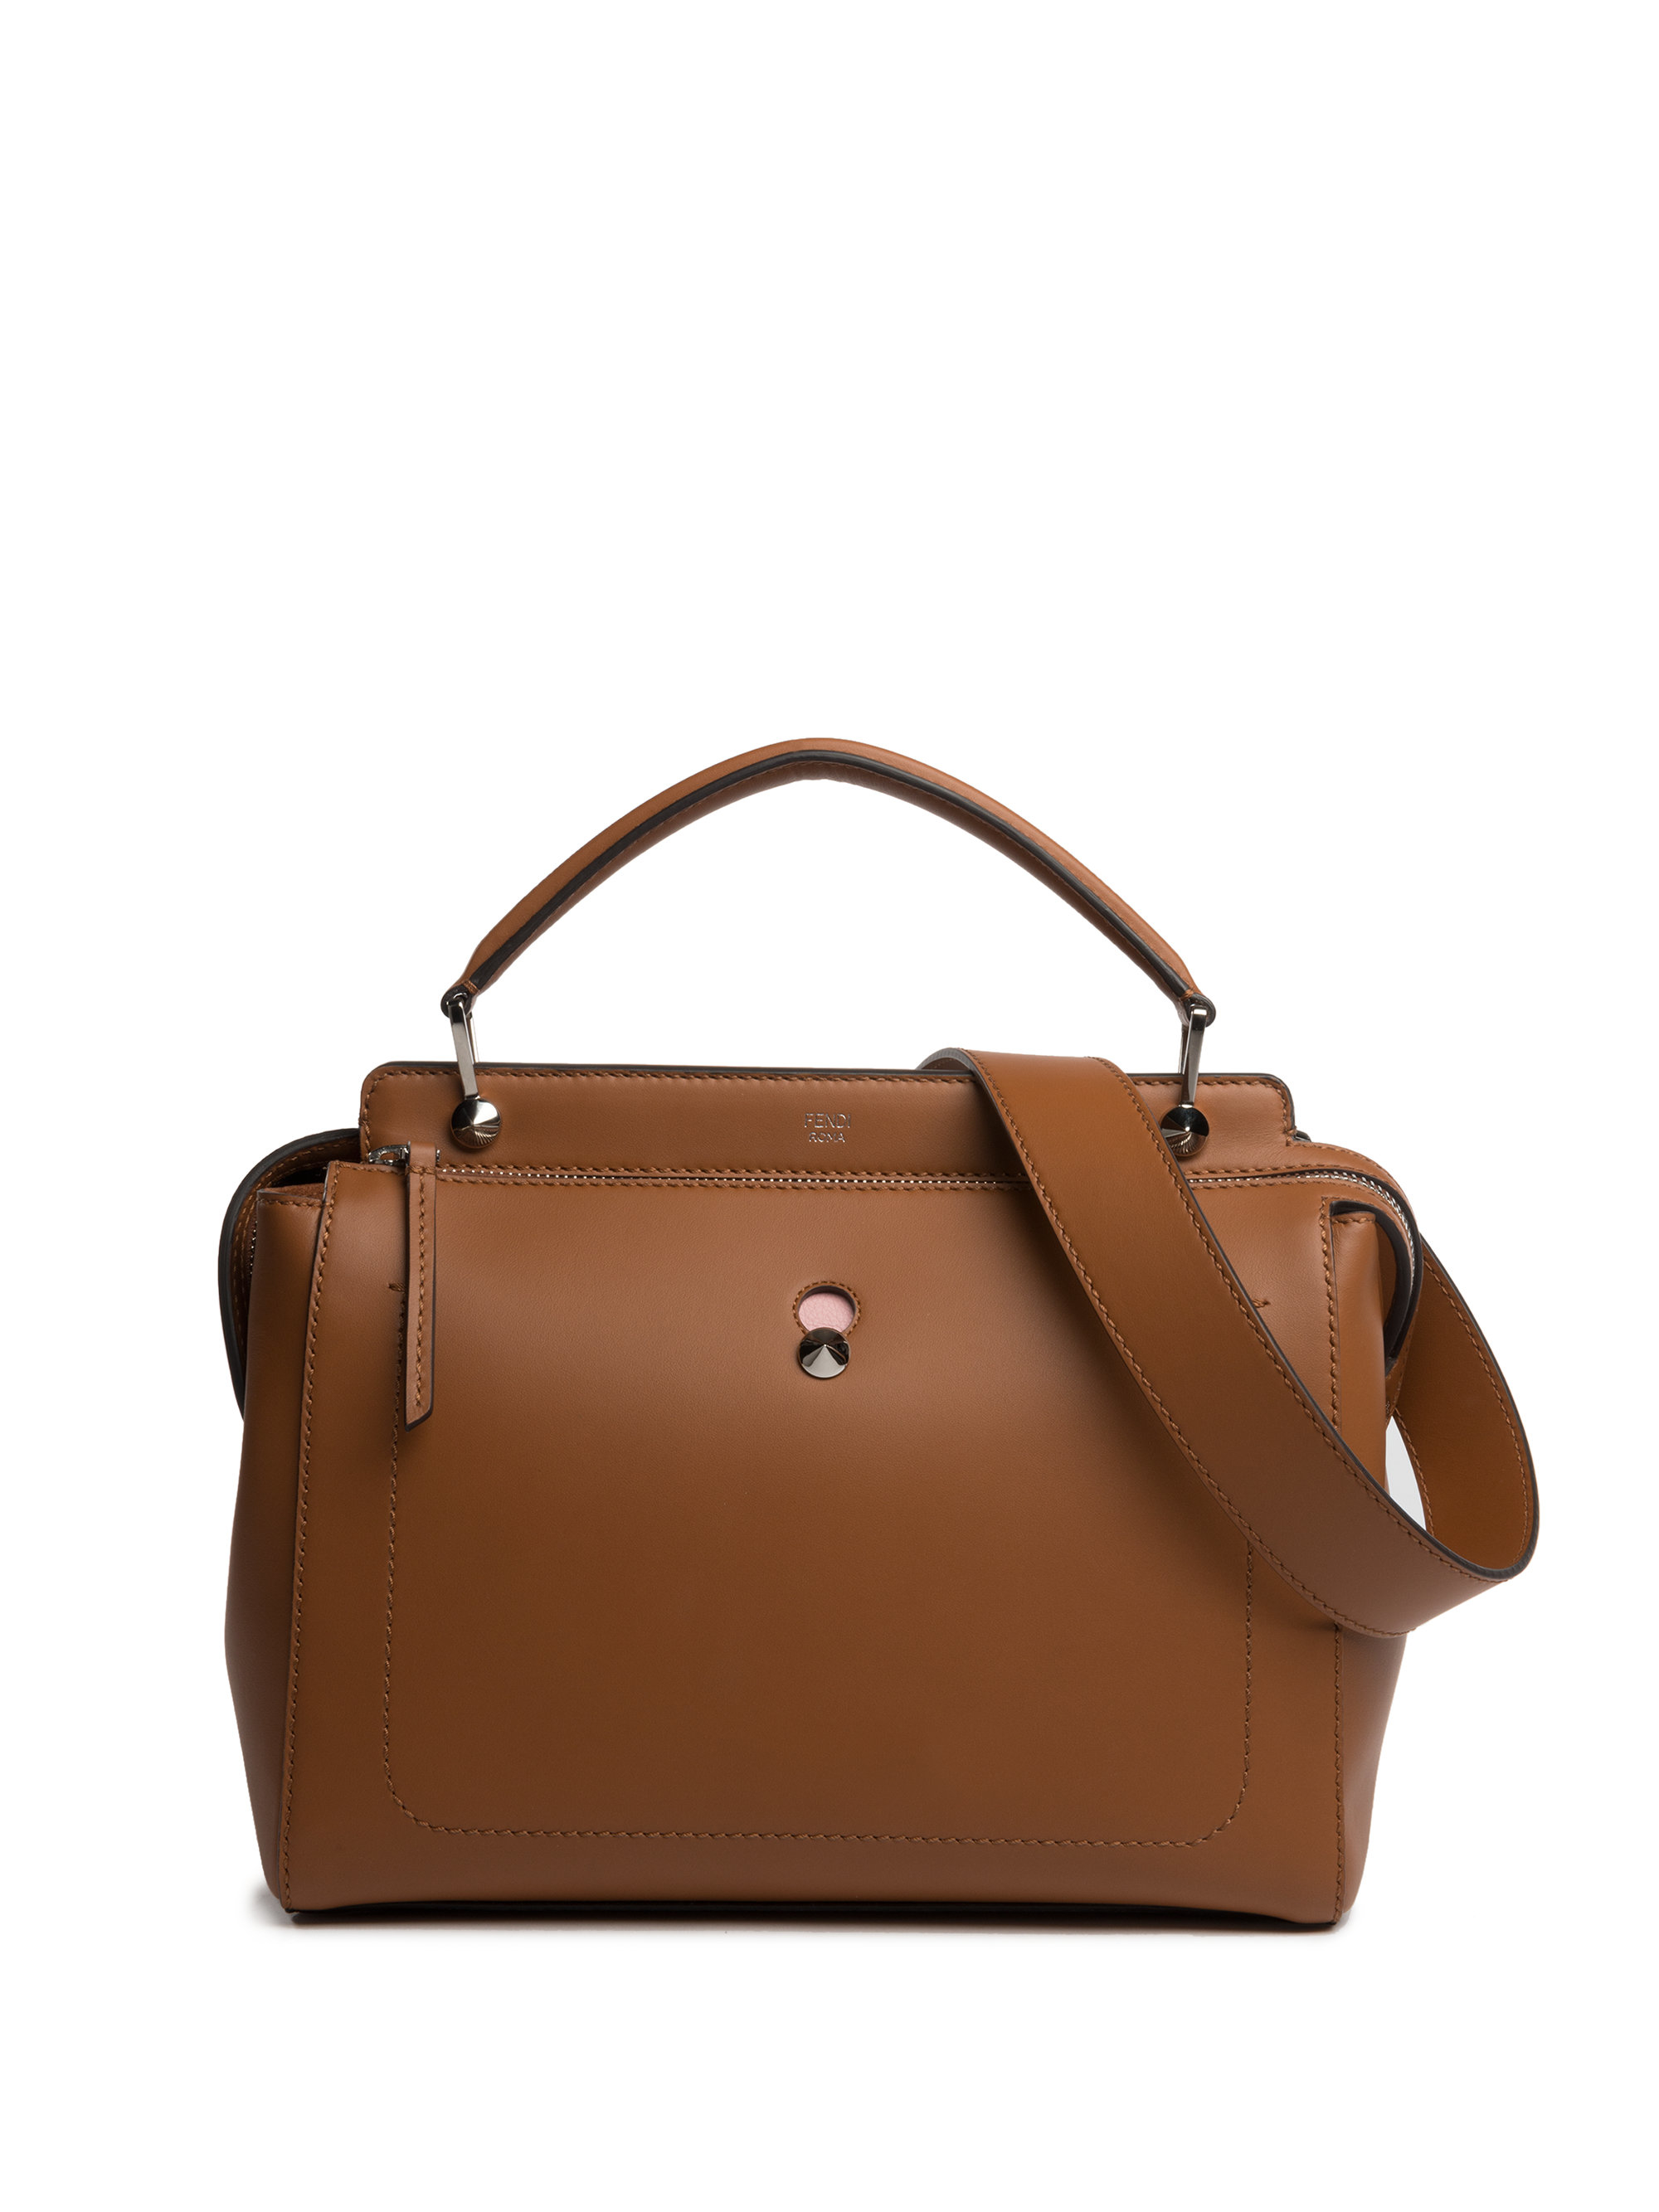 fendi-bark-dotcom-leather-satchel-brown-